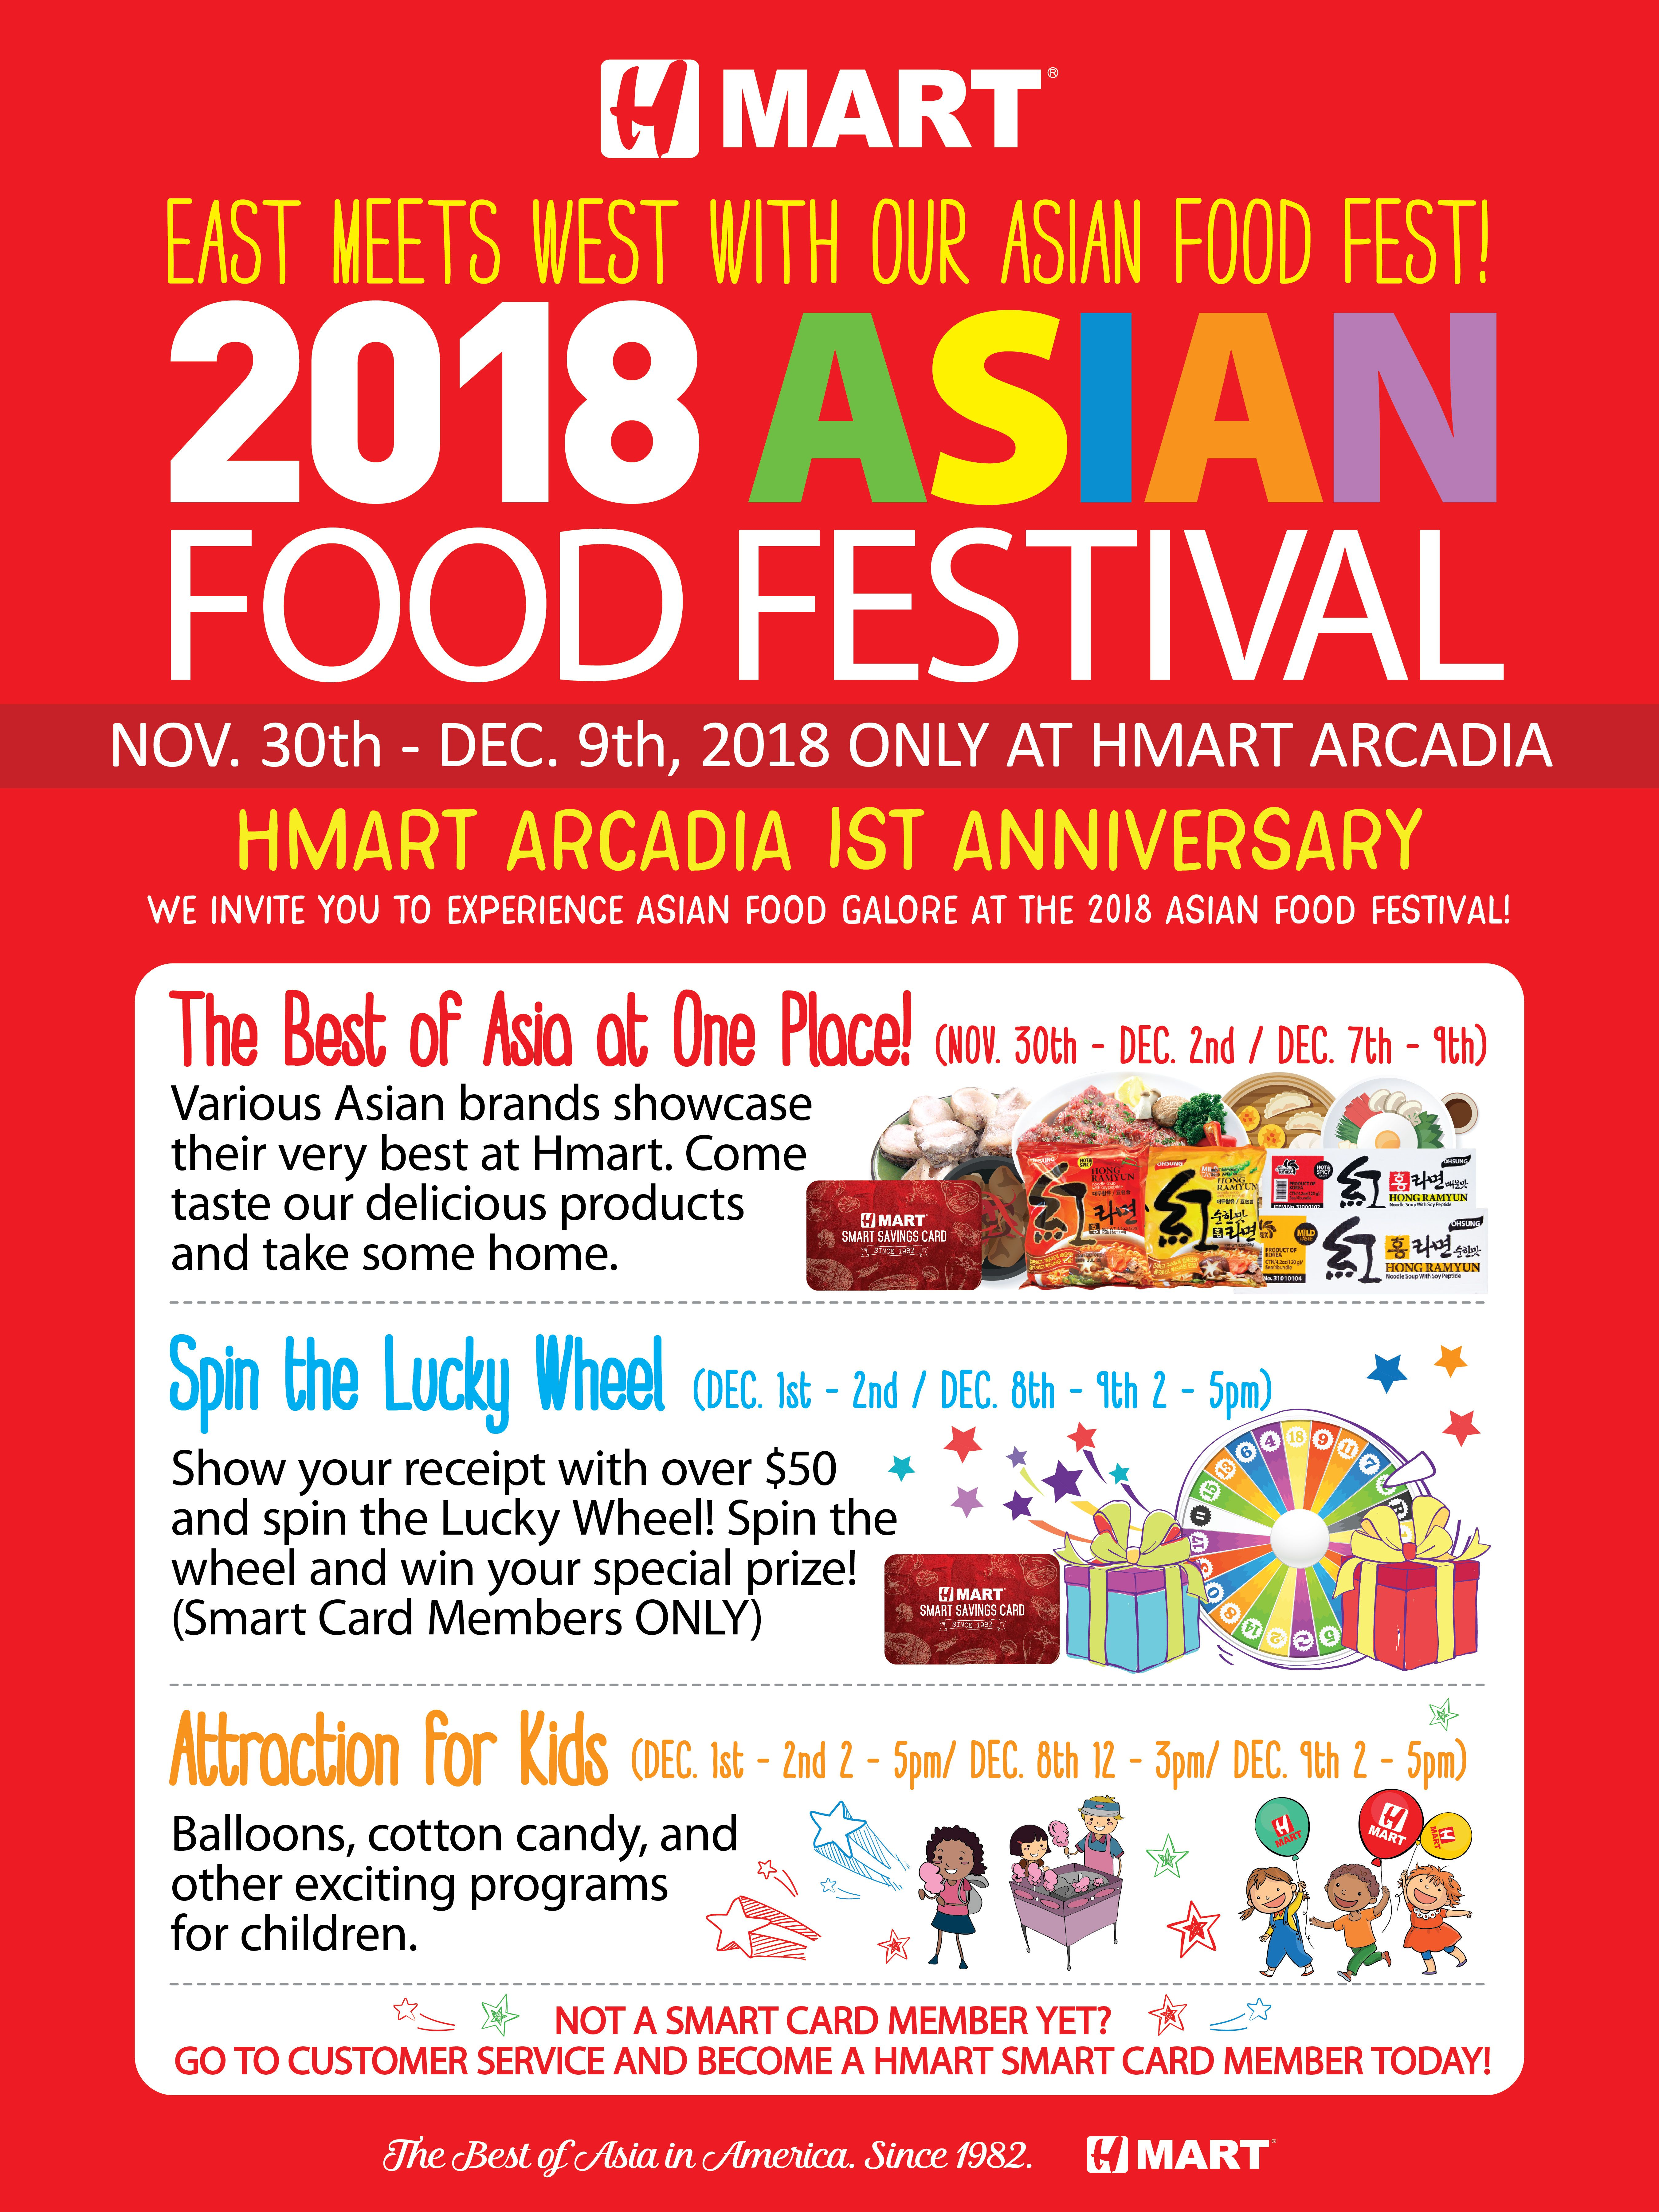 2018_arcadia_asian food festival_poster_en only_18 x 24 in_____ 01